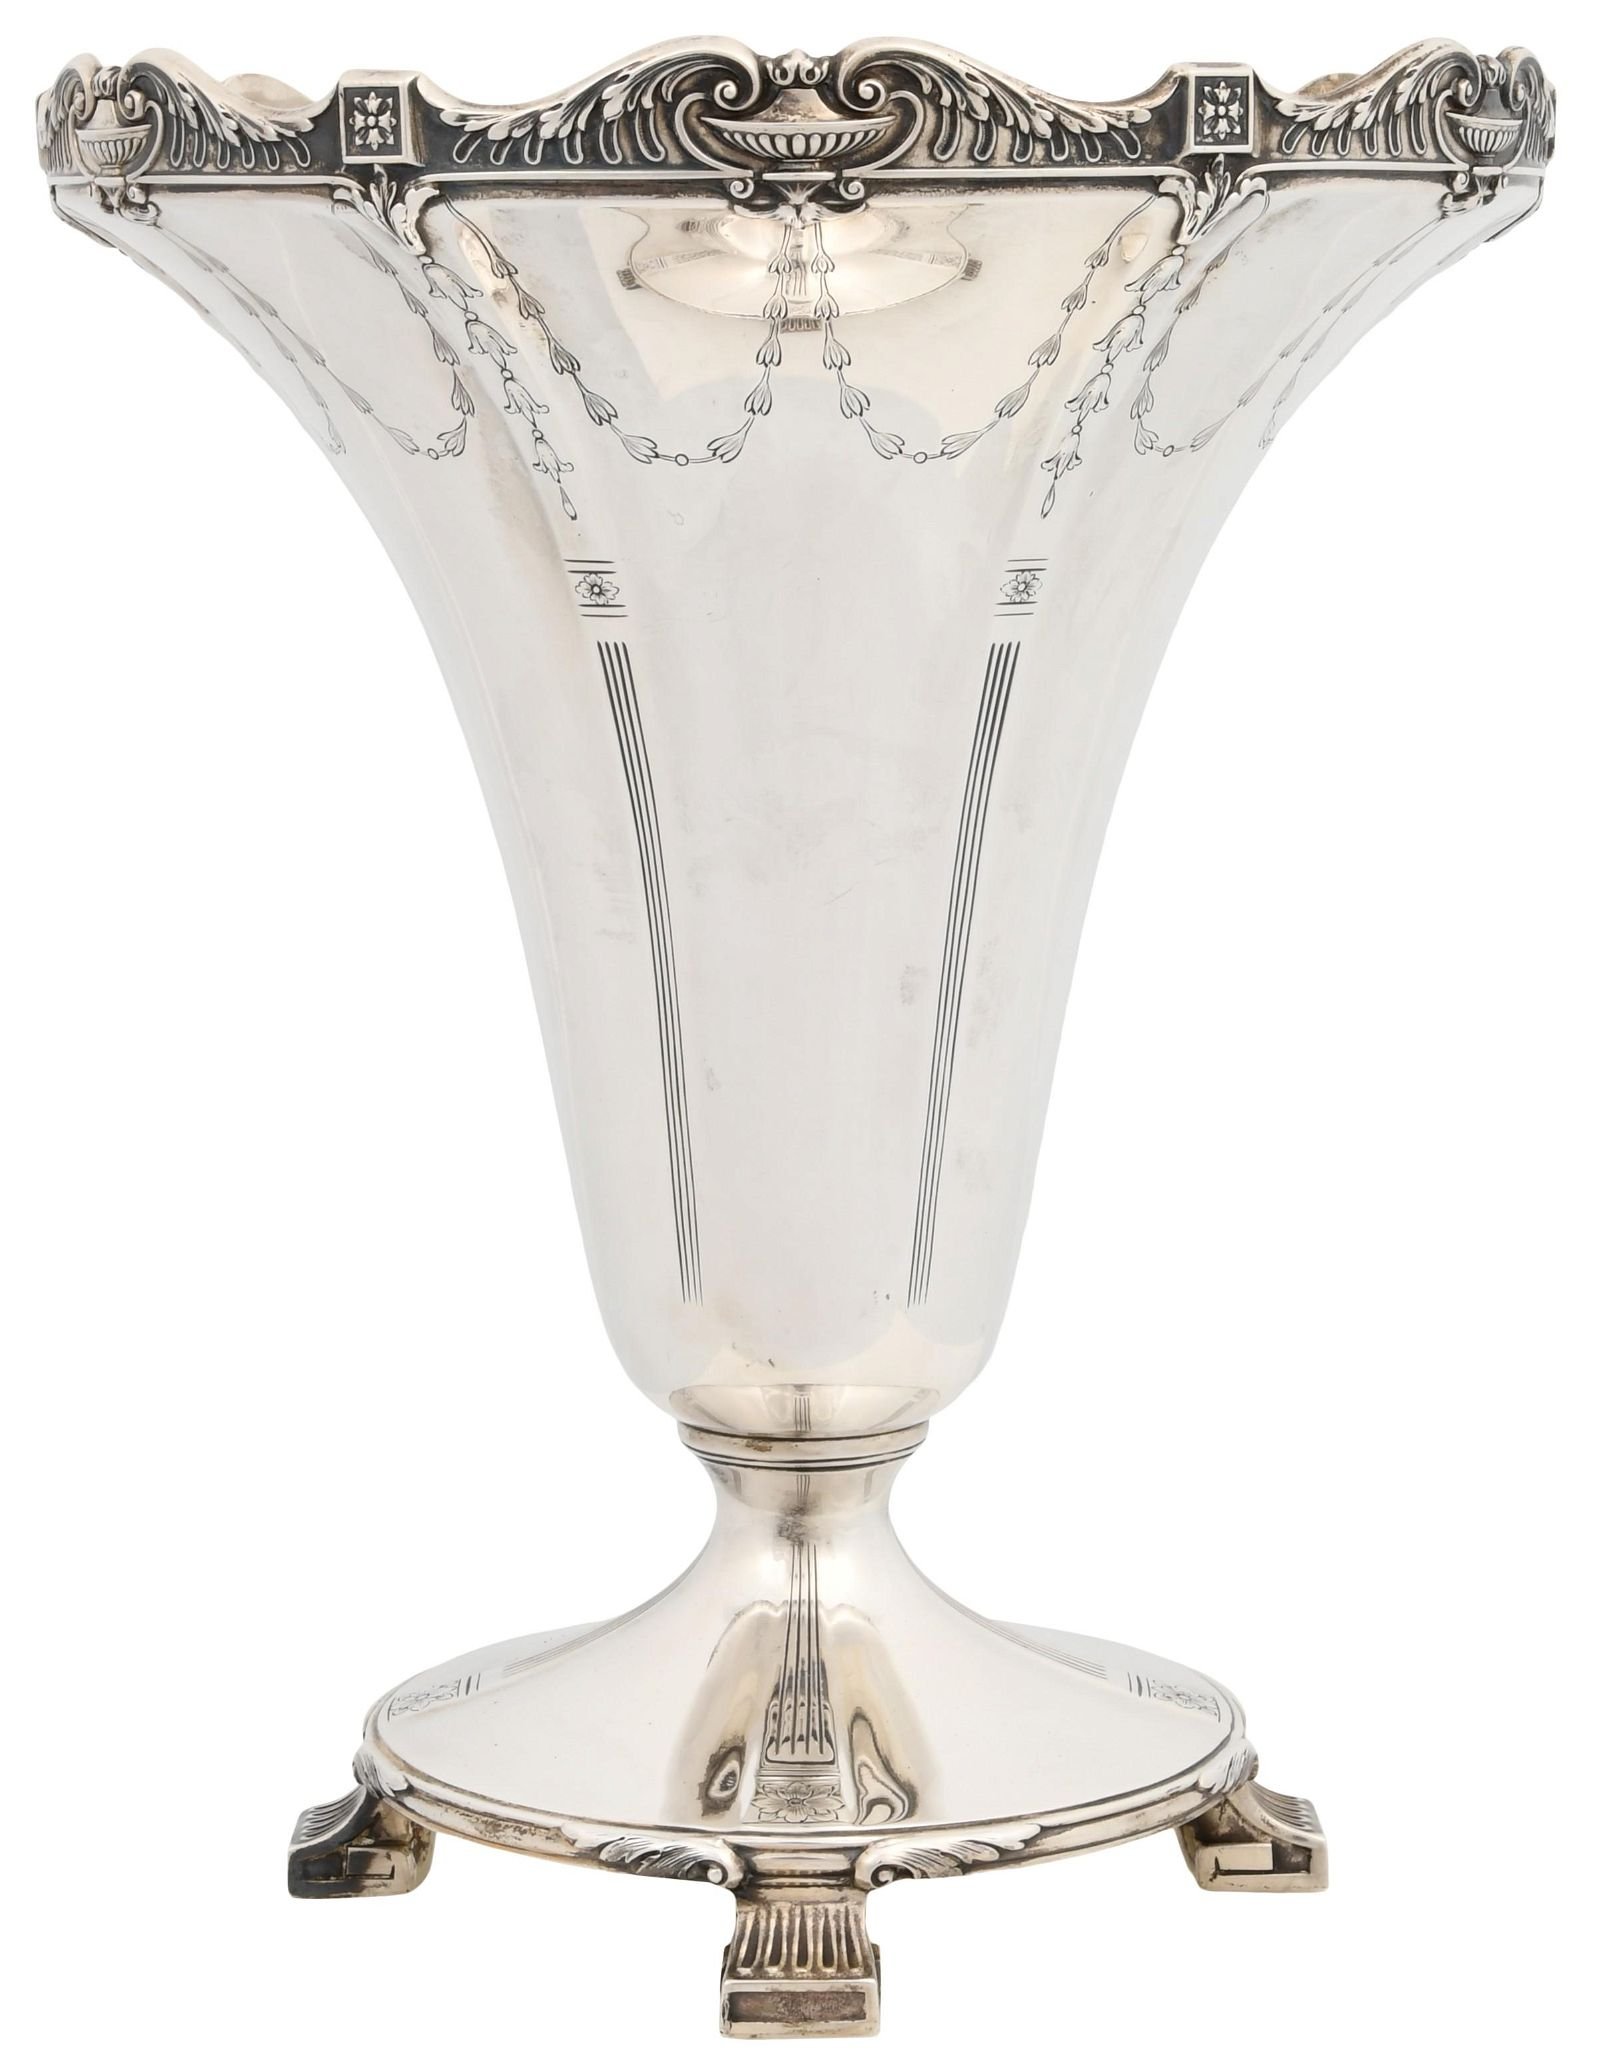 American Sterling Silver Footed Vase